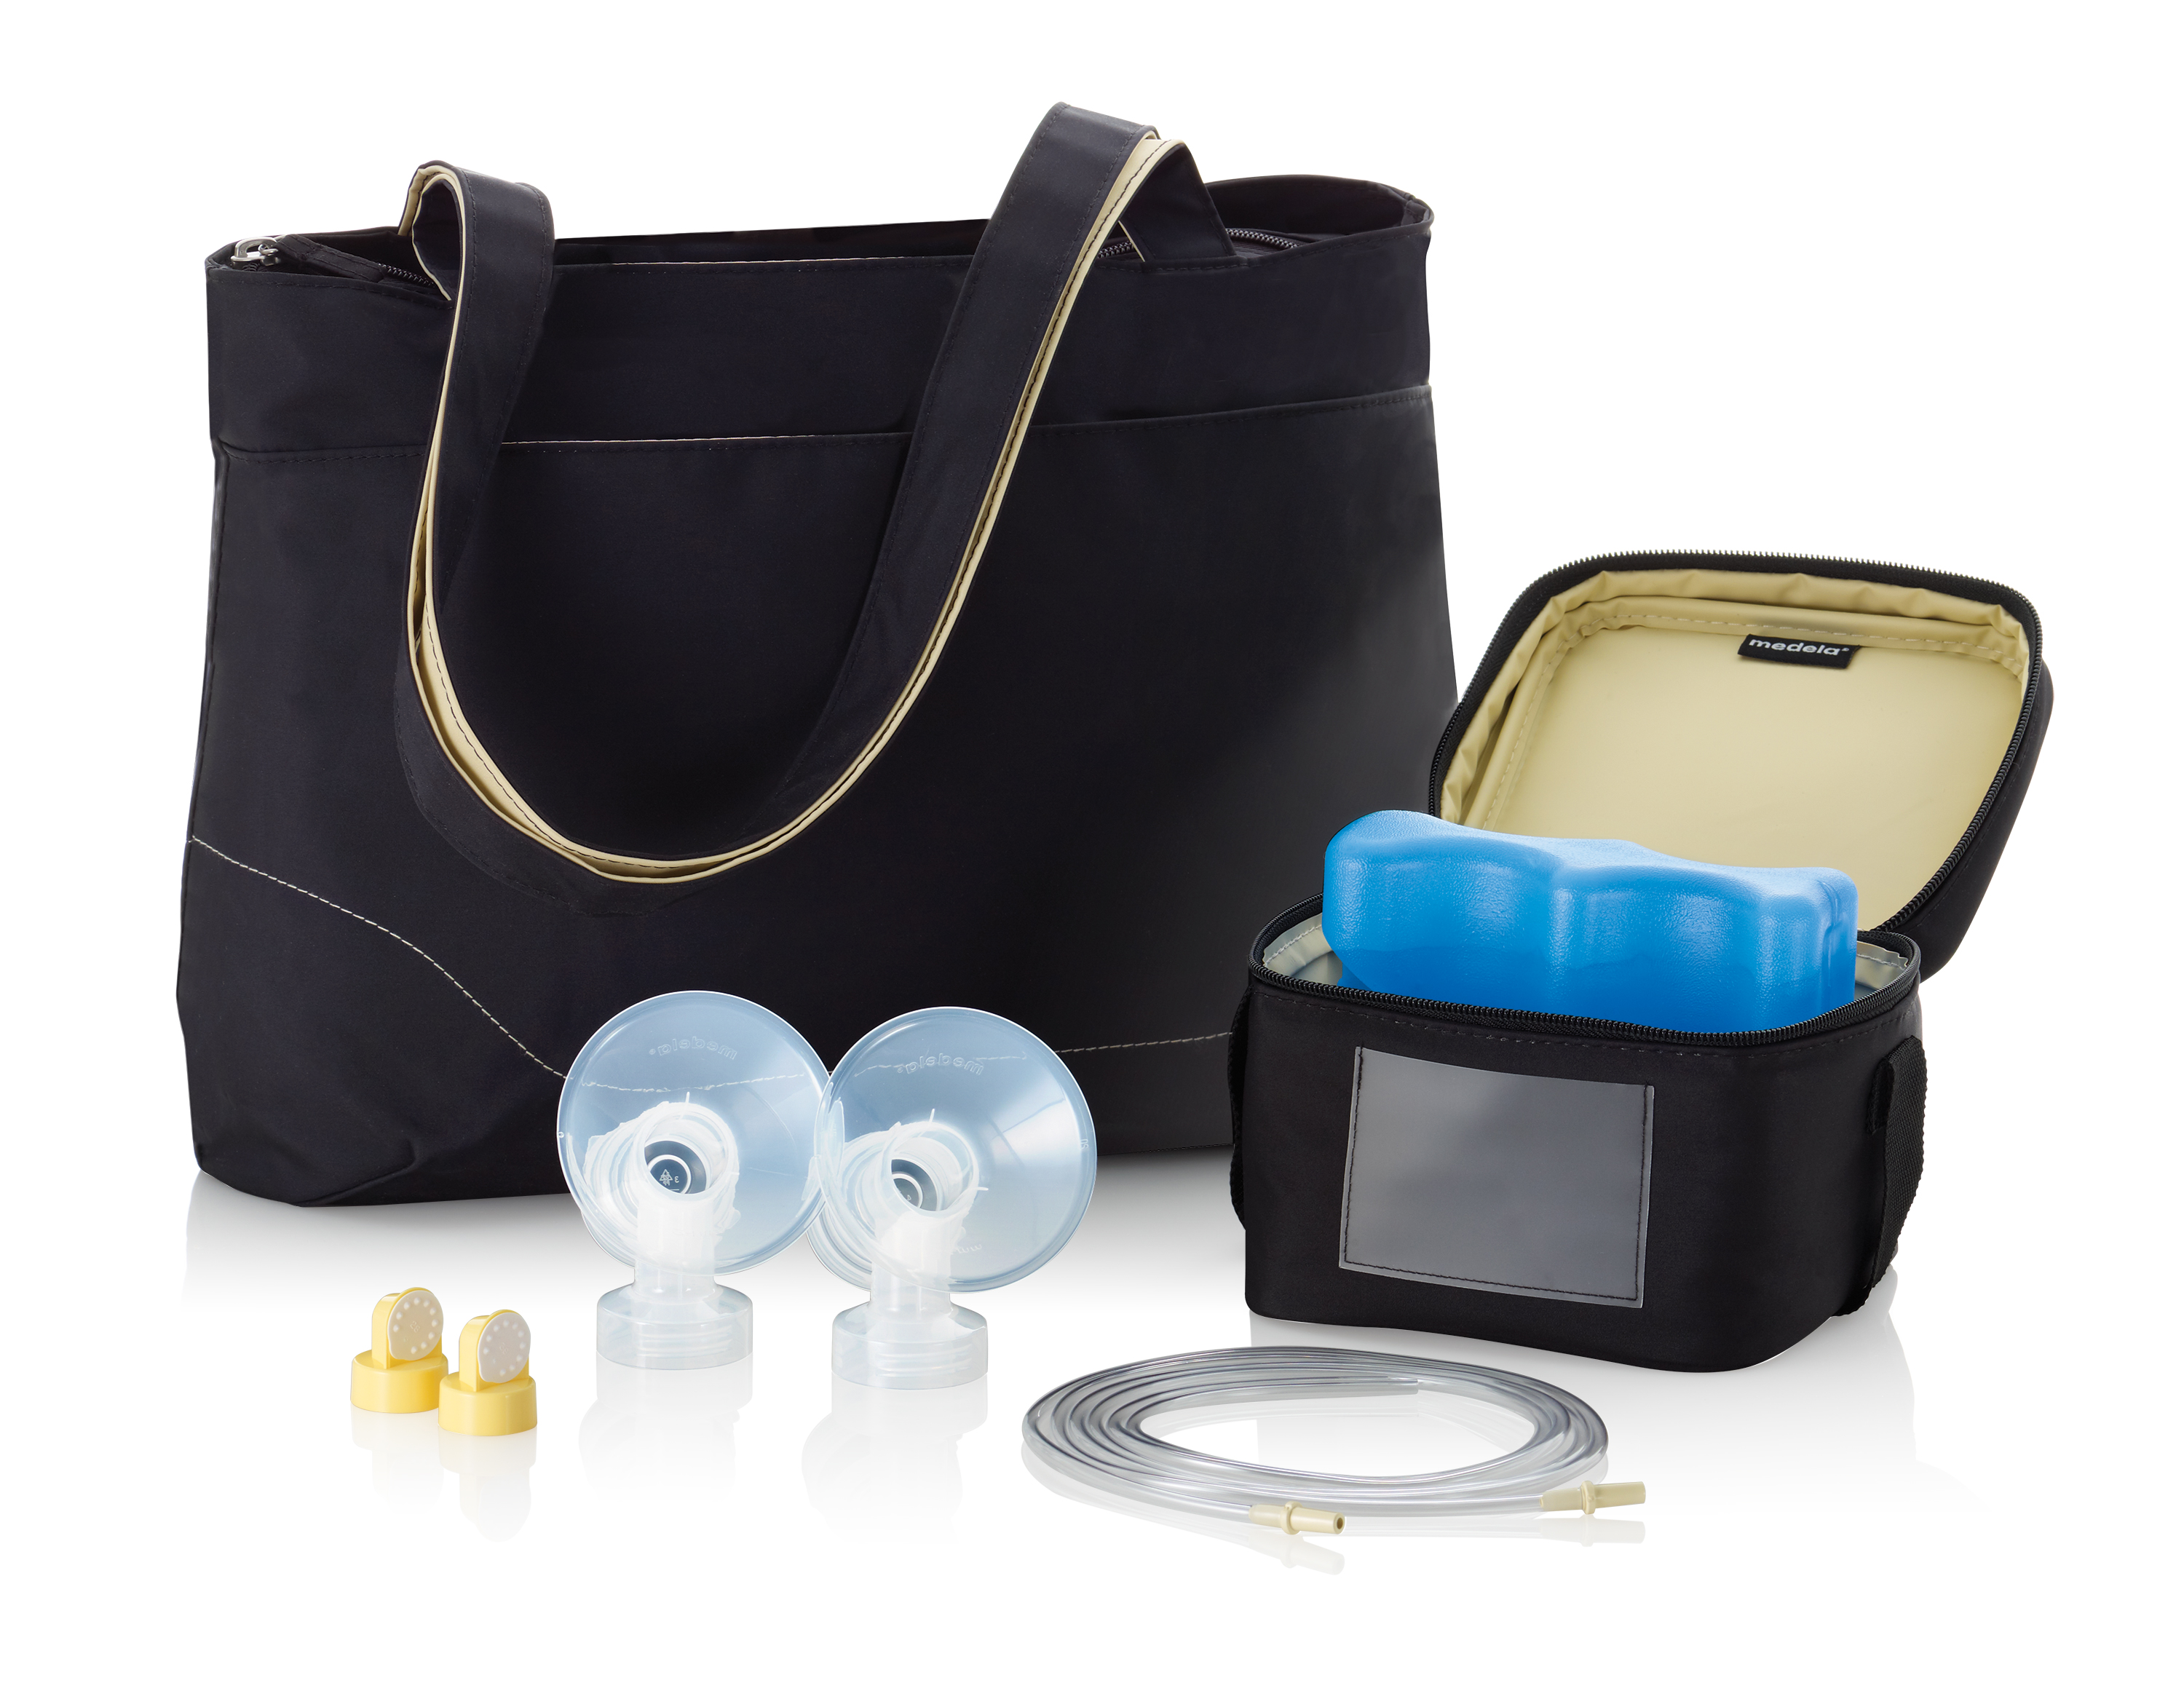 Medela Shoulder Bag Kit